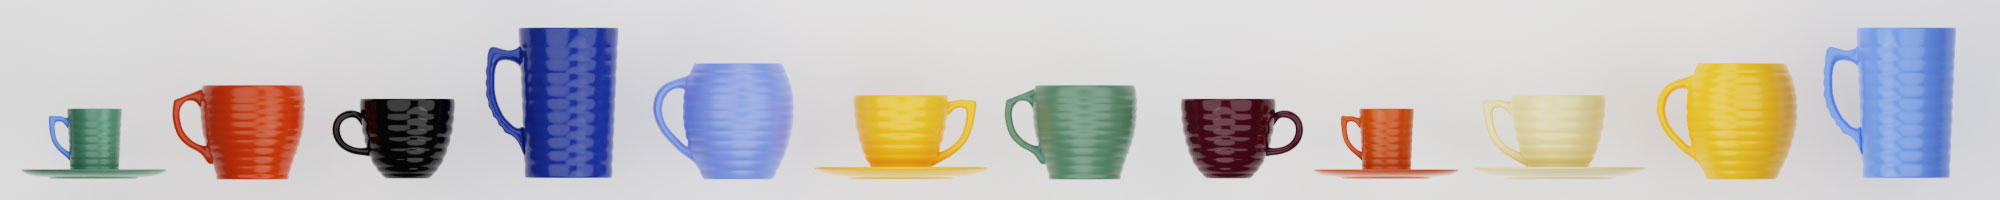 QwkDog 3D Bauer Pottery Cups Mugs Banner